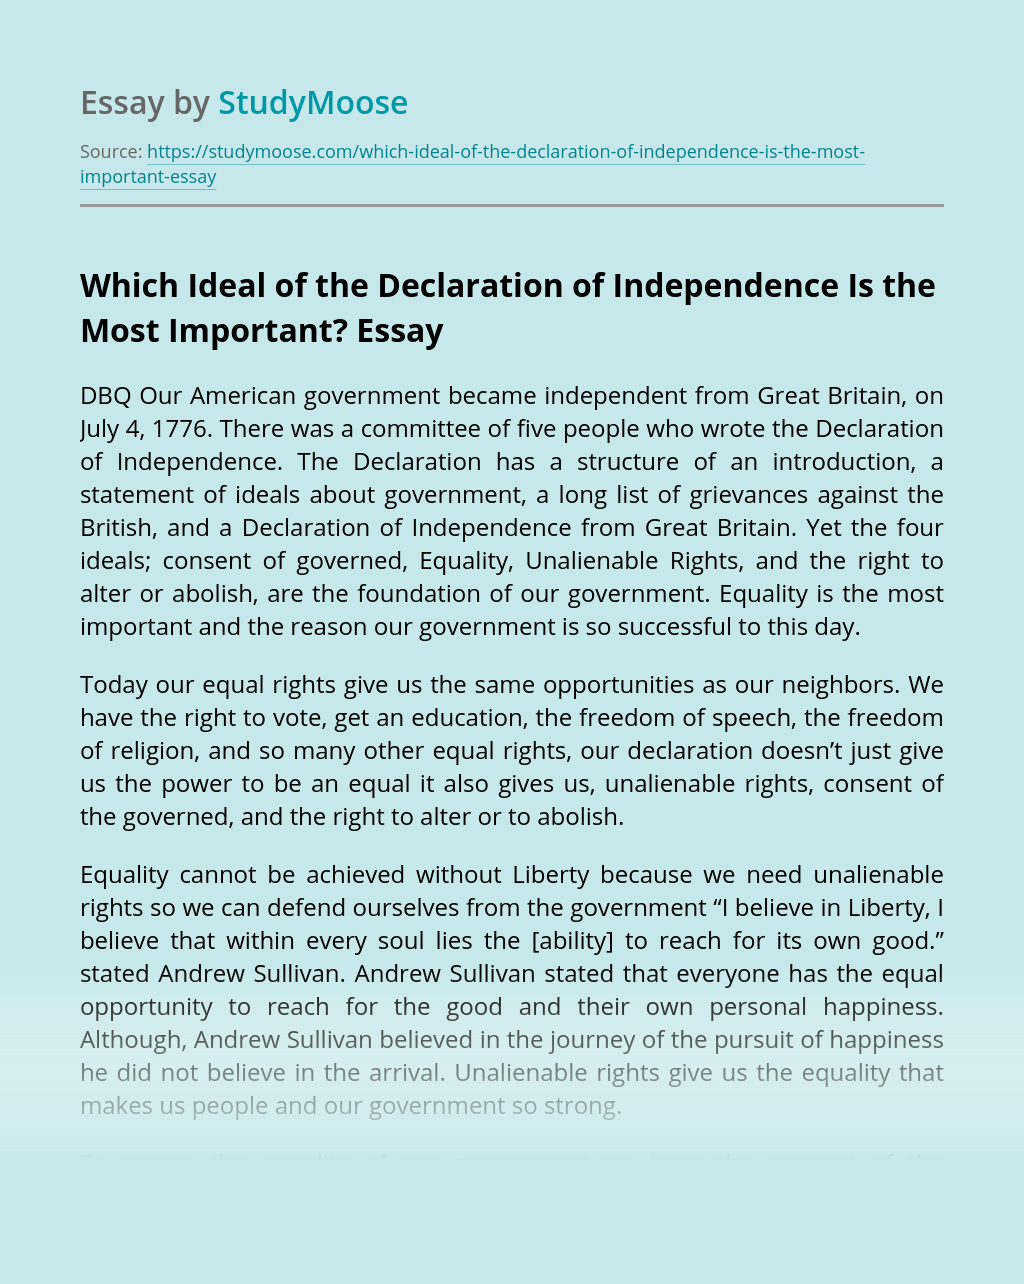 Which Ideal of the Declaration of Independence Is the Most Important?